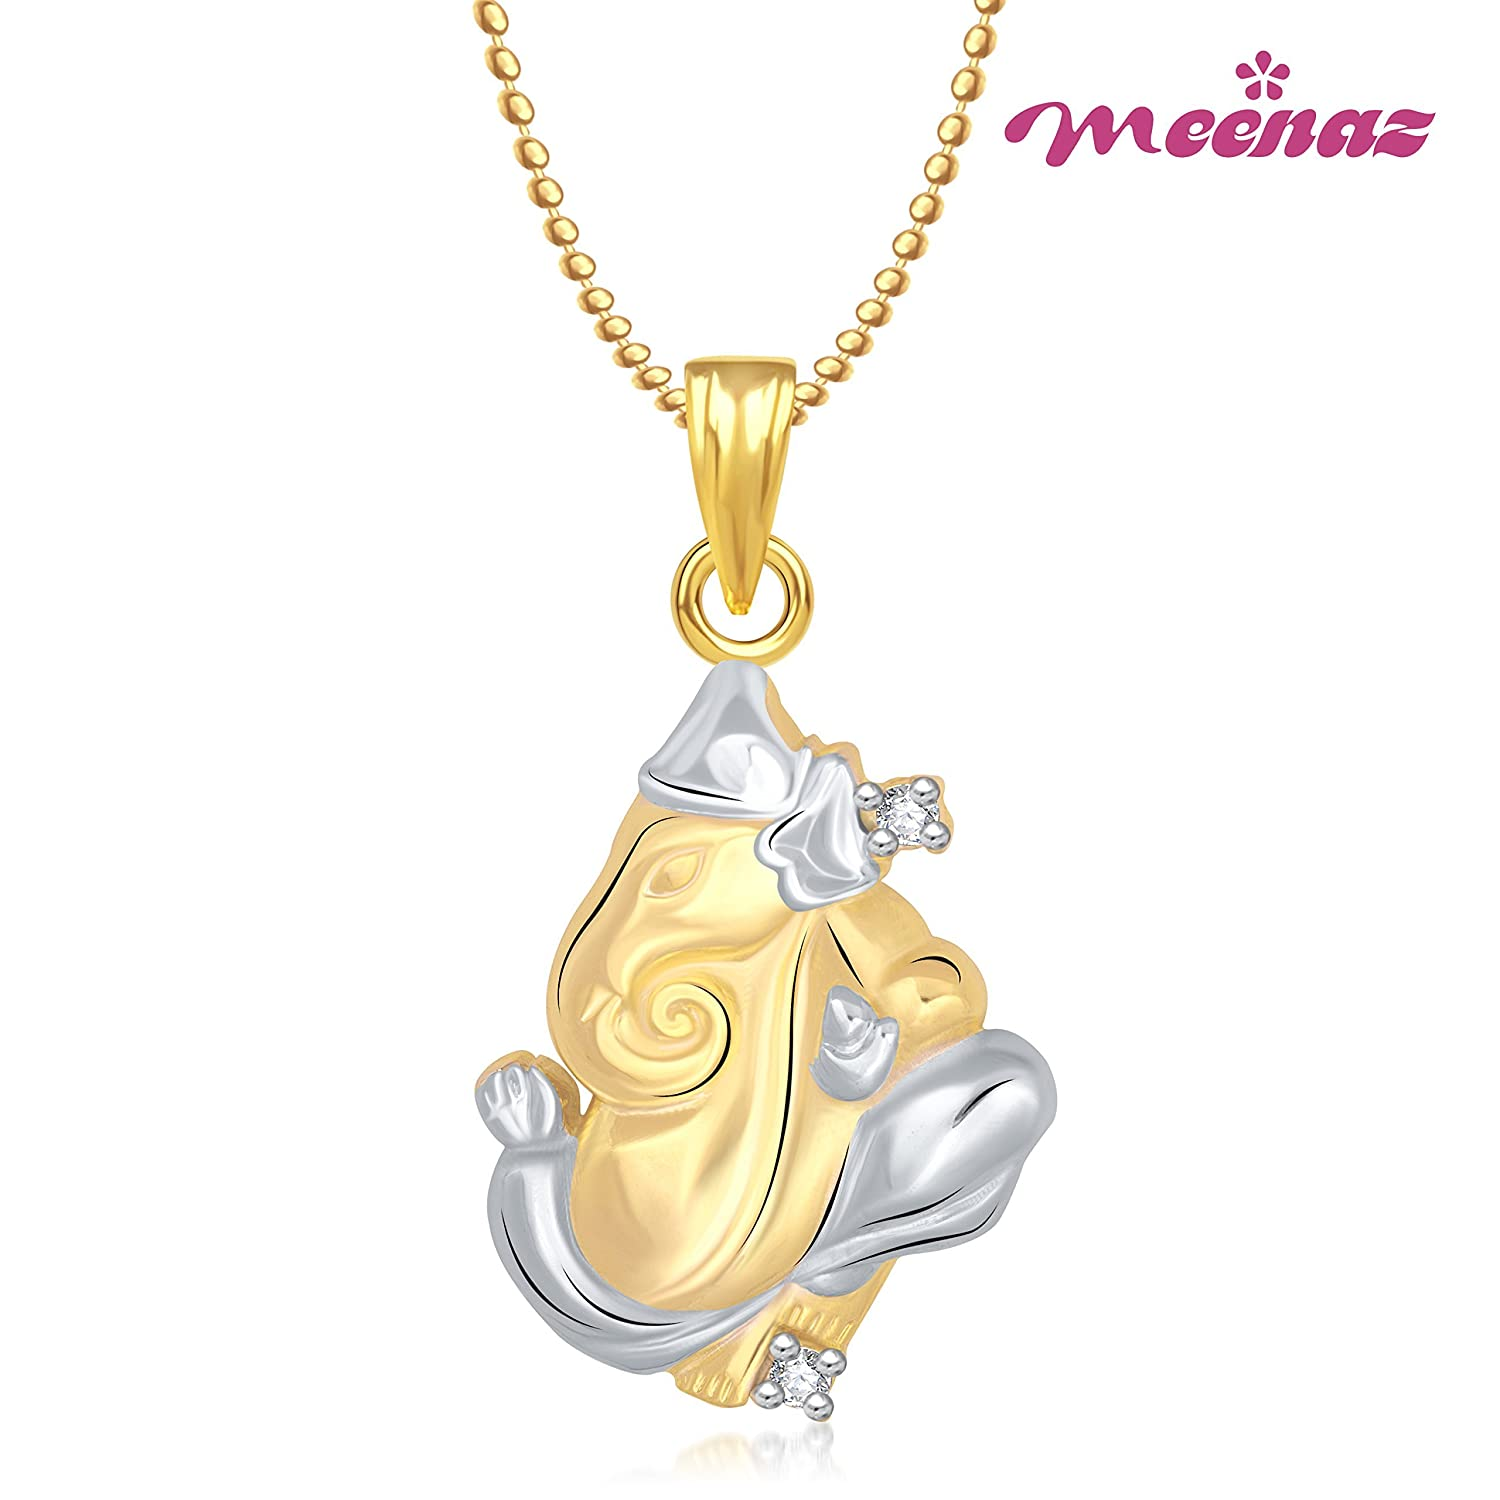 shape charm chain filigree com walmart engraved round ip pendant locket lockets with necklace